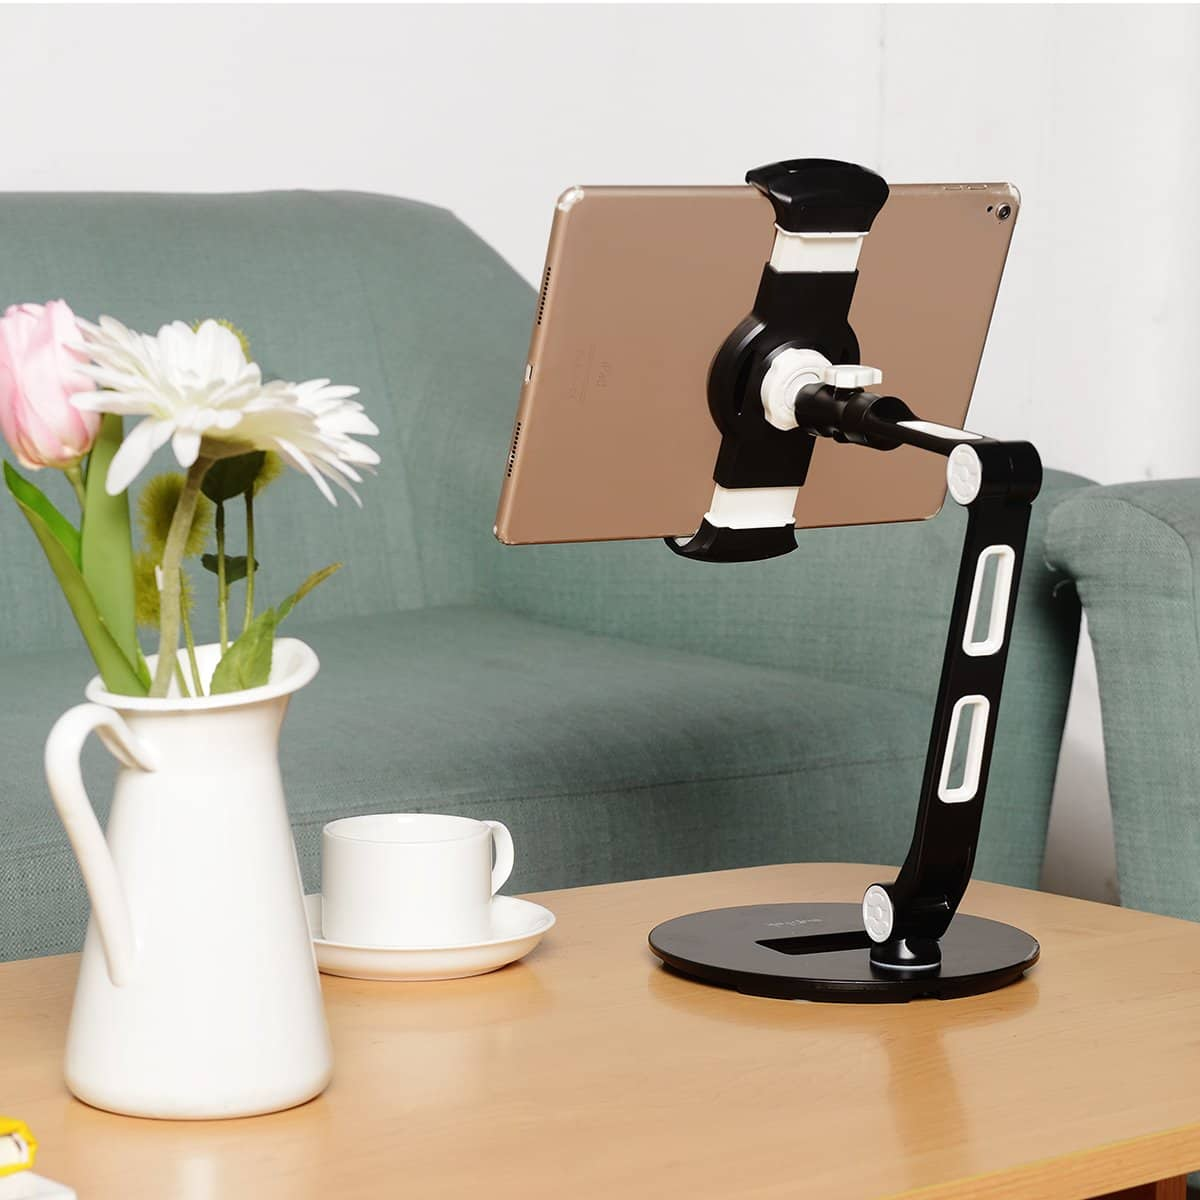 Suptek Aluminum Tablet Desk Stand for iPad, iPhone, Samsung, Asus and More 4.7-11 inch Devices, 360° Flexible Cell Phone Holder Mount, Good for Bed, Kitchen, Office (YF208D) $17.99